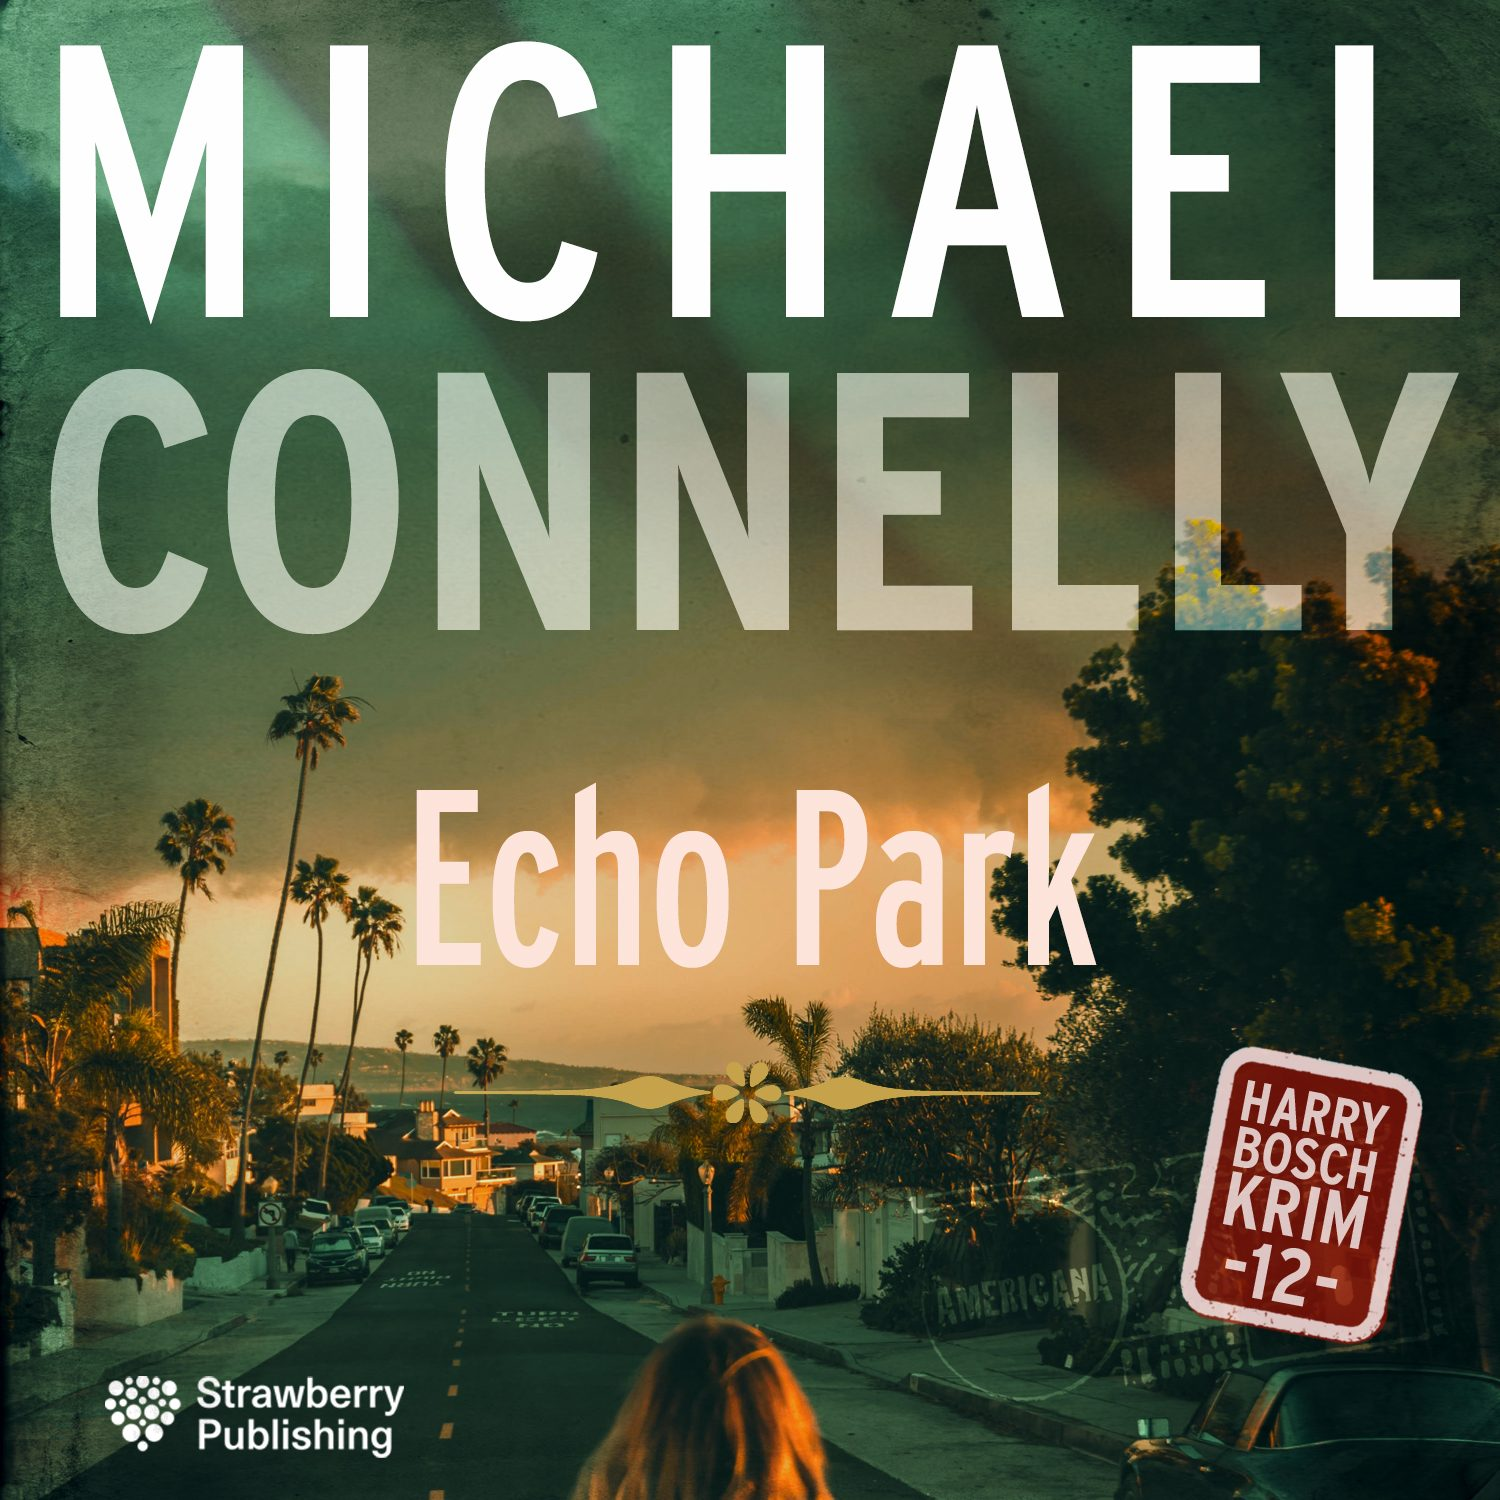 MICHAEL CONNELY Echo Park